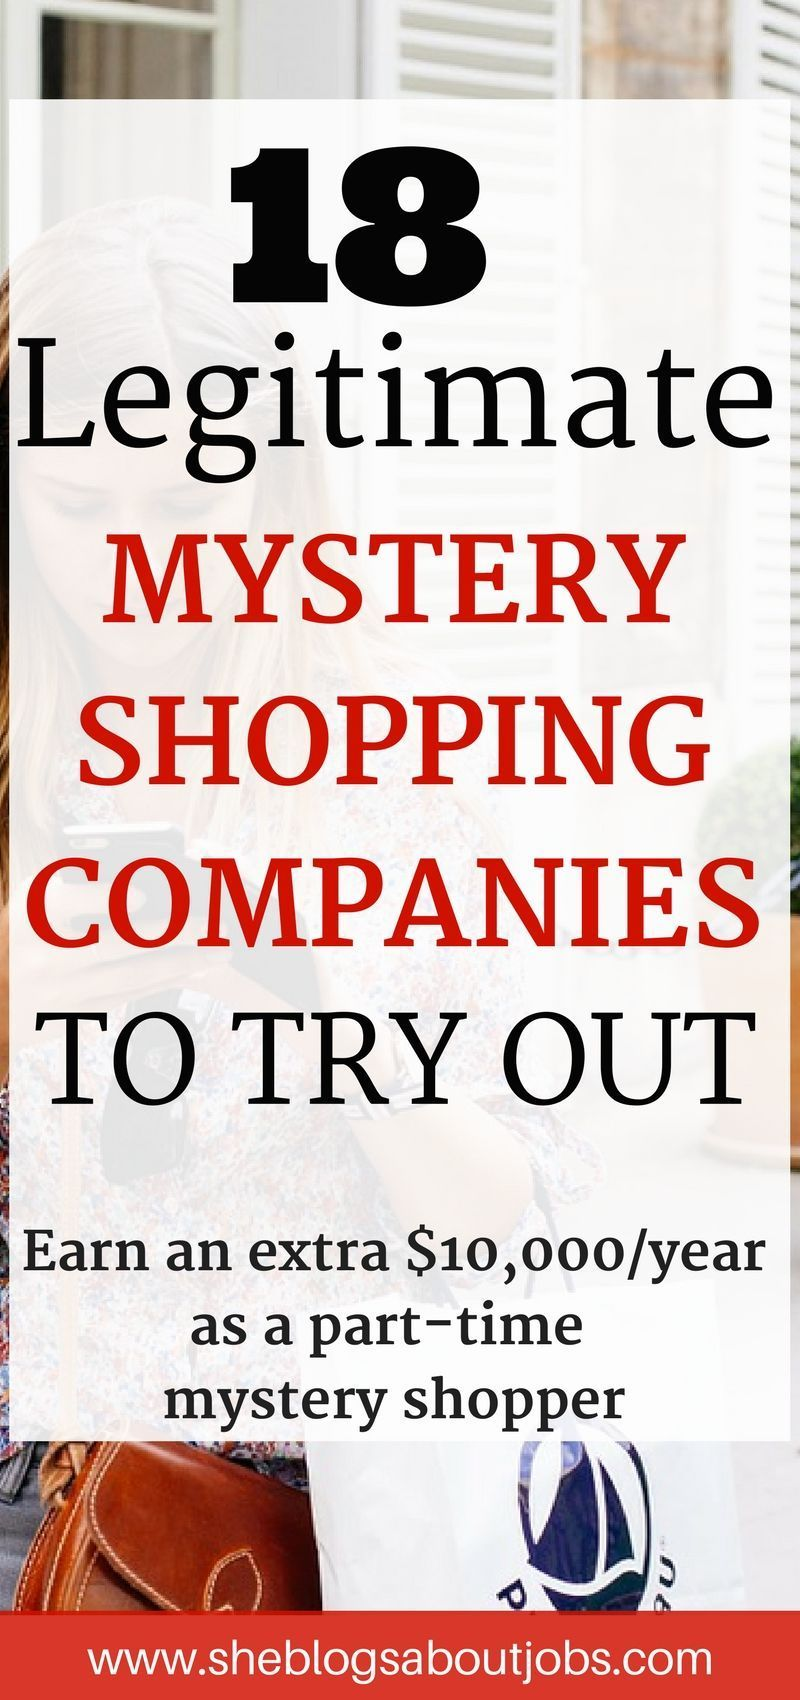 Make easy money| Make money from home | Mystery shopping | Mystery ...